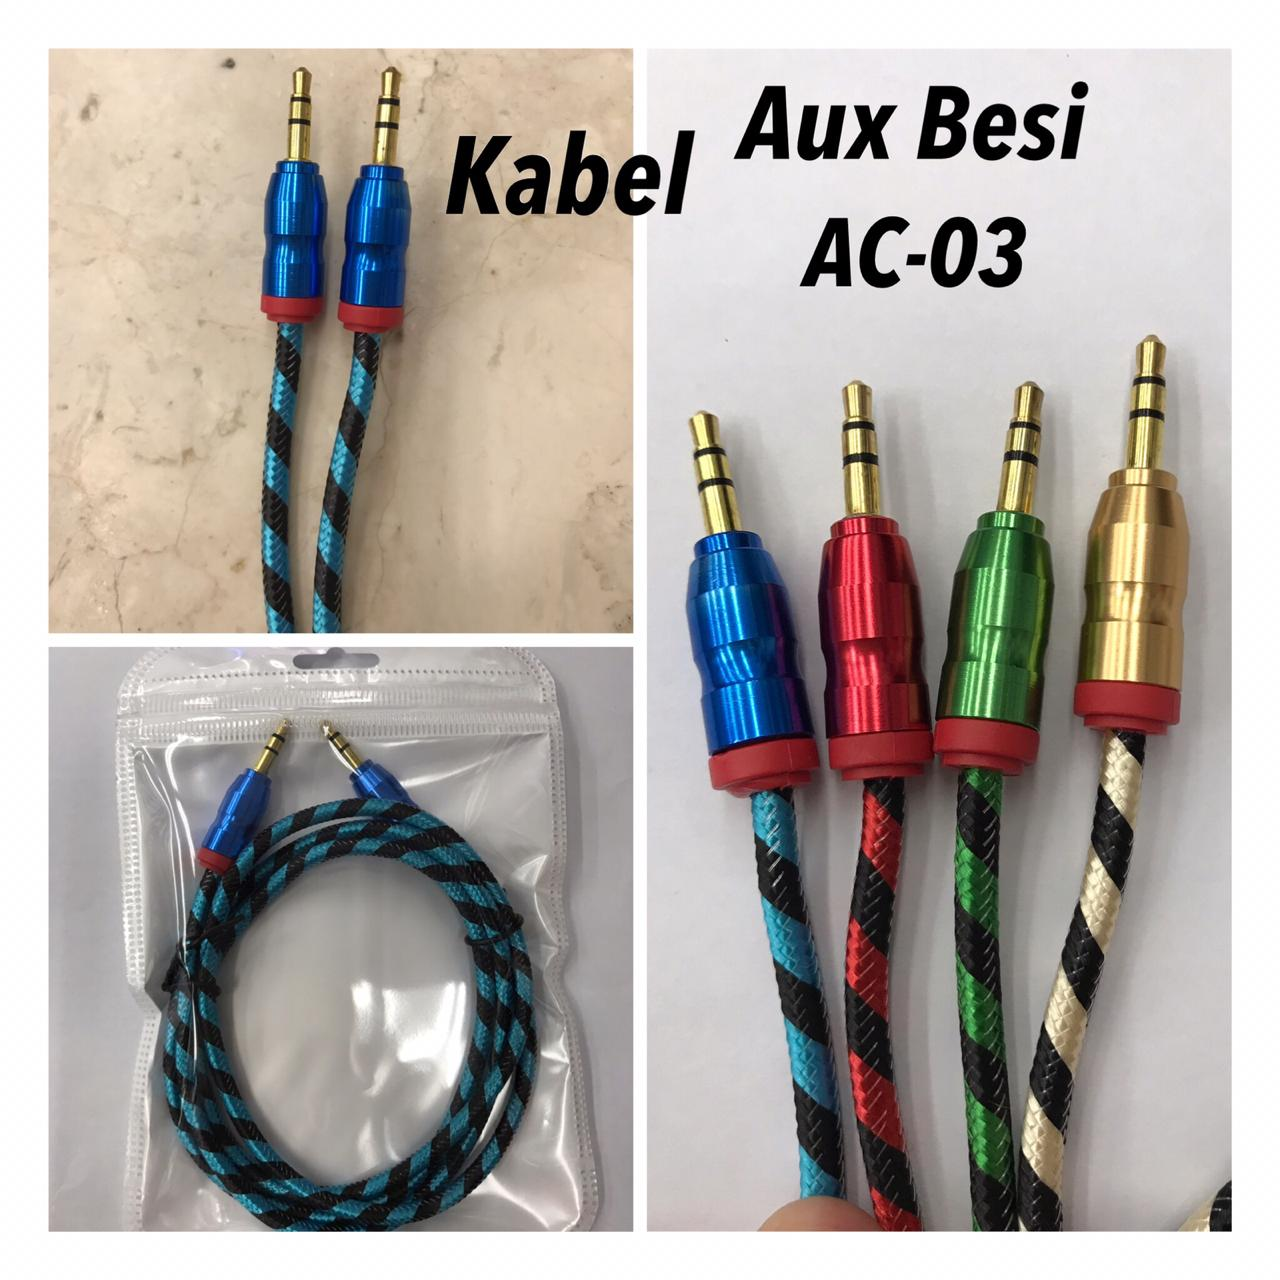 Kabel Aux 1 in 1 Besi AC-03